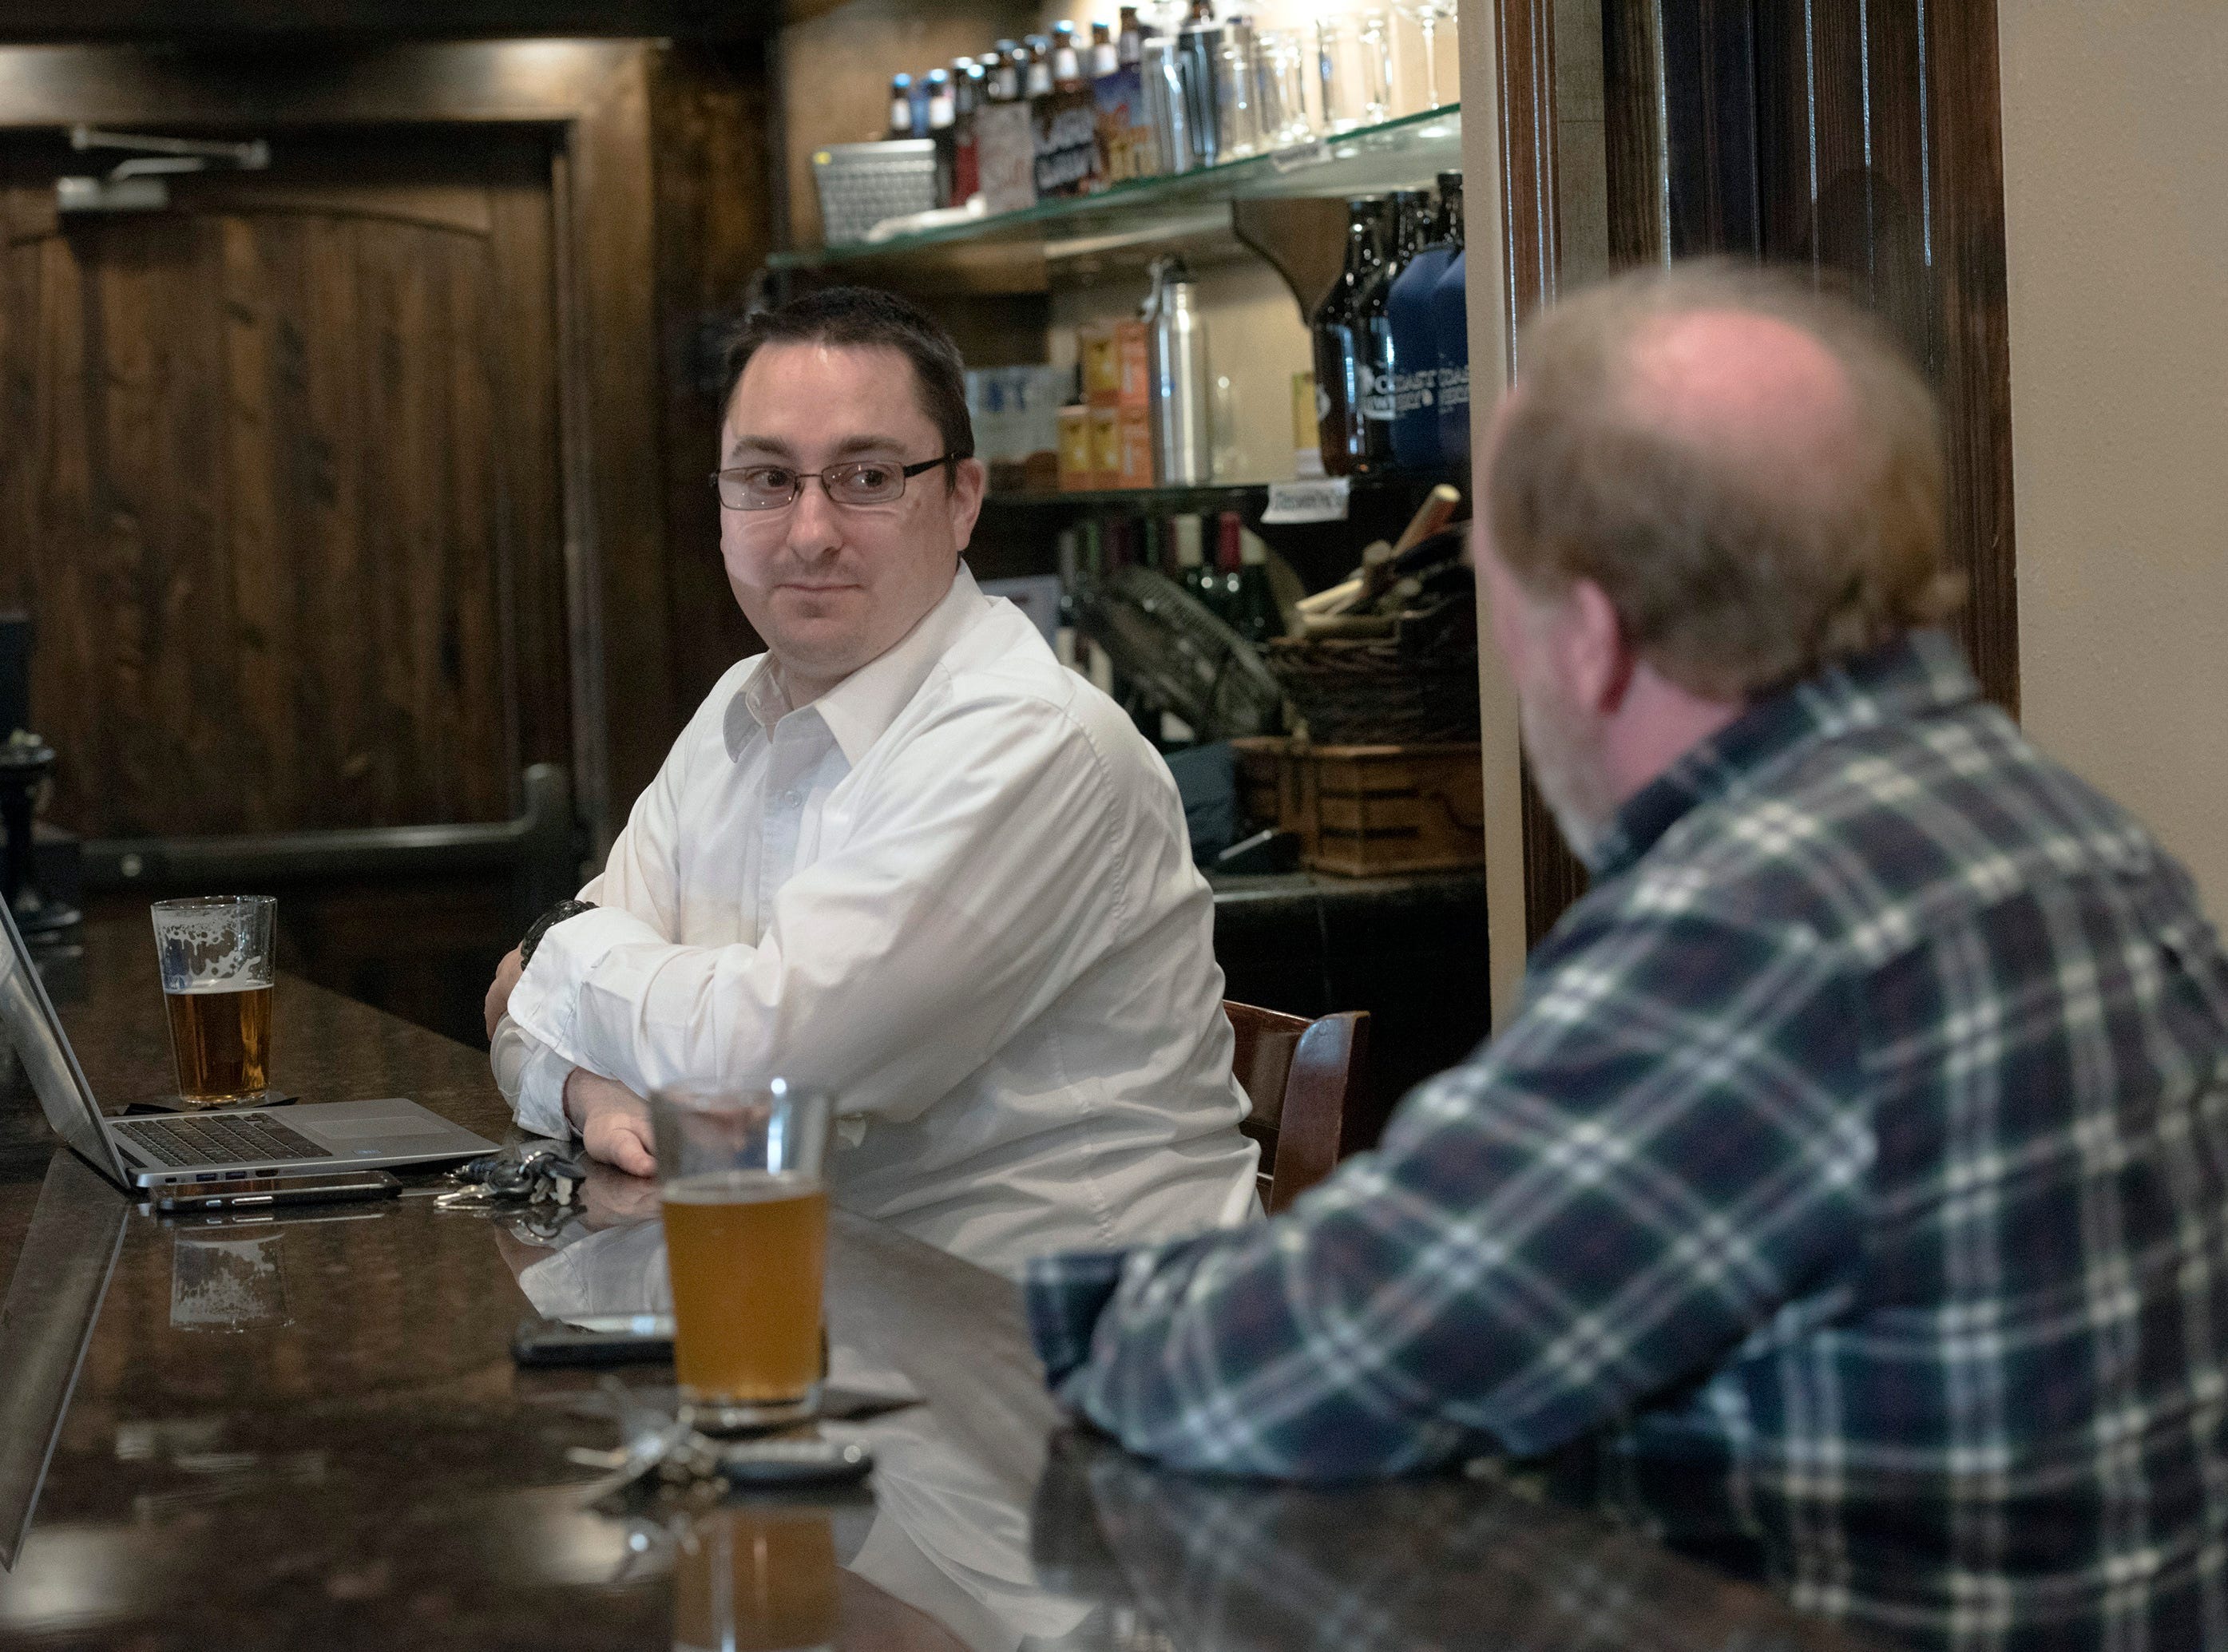 Mark Price and Tom Lehane, regular customers at the Gulf Coast Brewery, share a conversation and a beer on Thursday, Jan. 31. 2019. The craft brewery located on Heinberg Street in downtown Pensacola will soon celebrate its third anniversary.